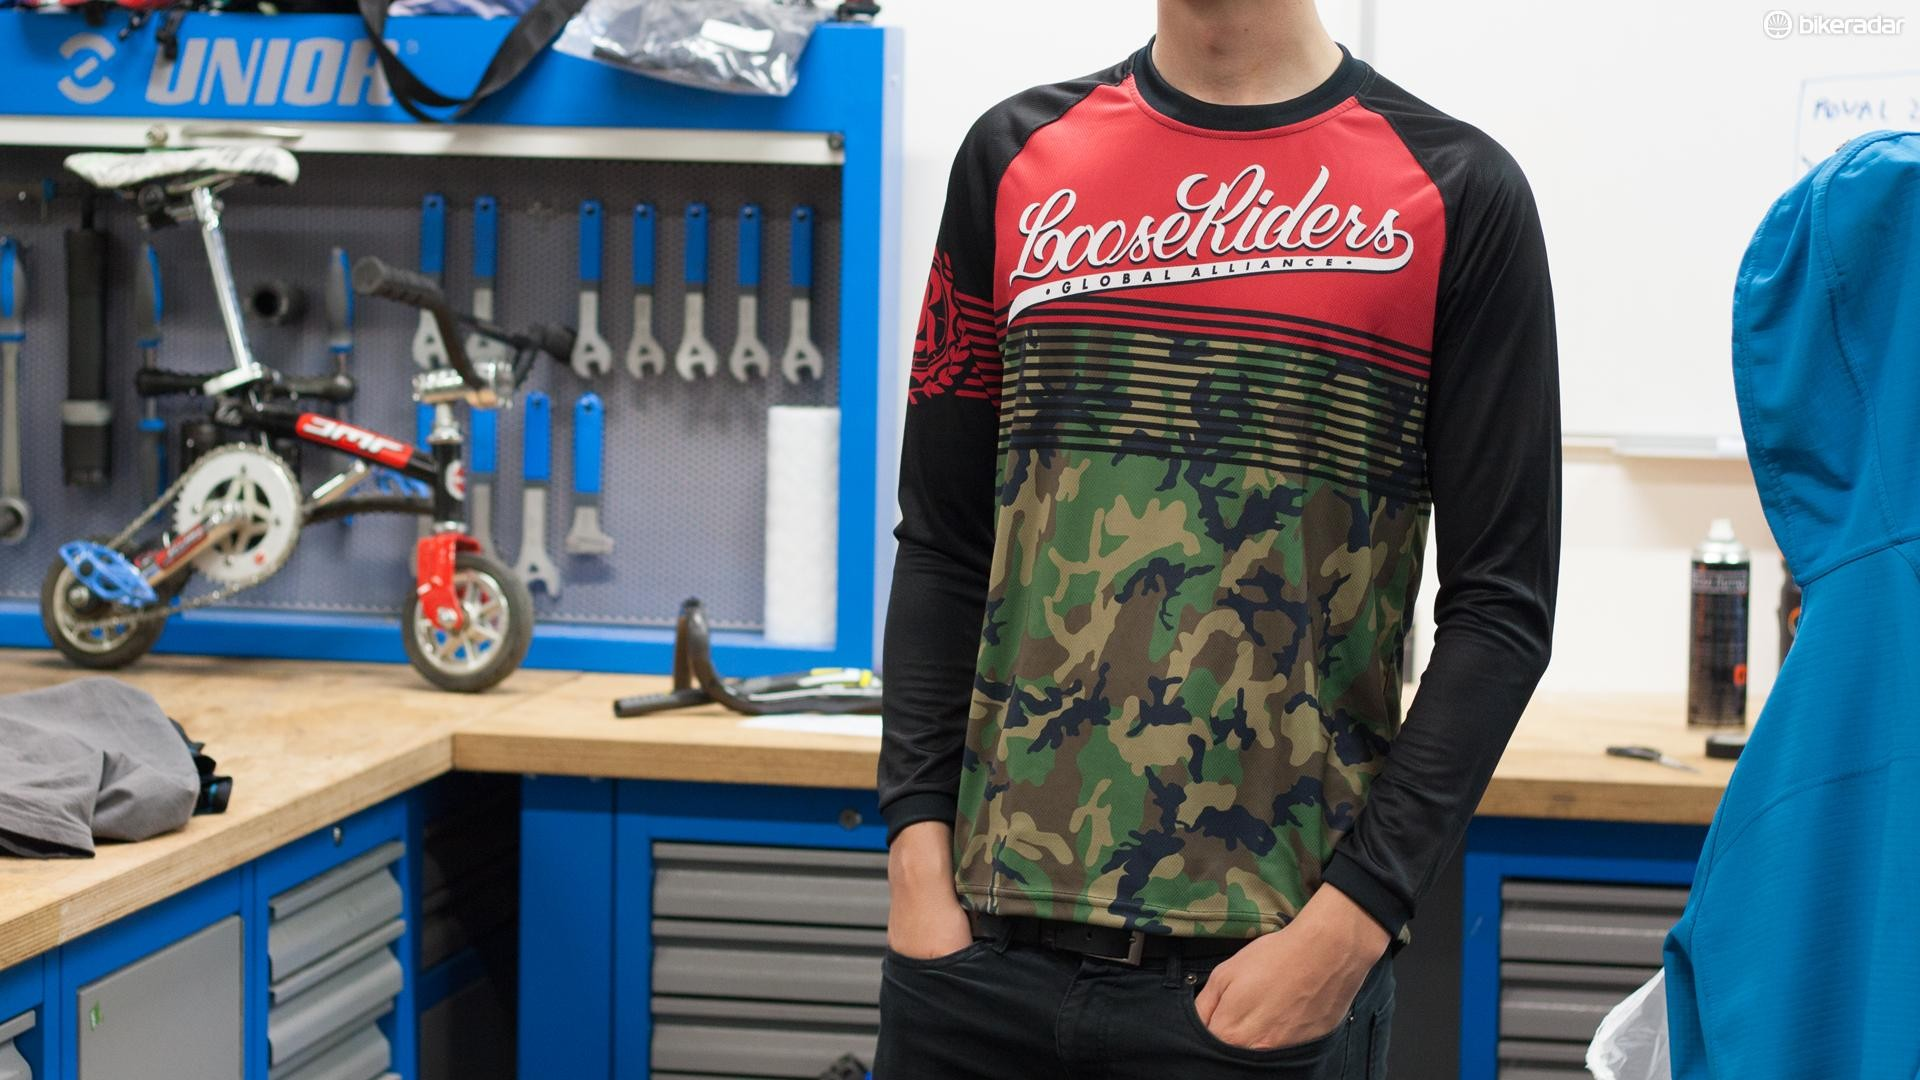 Loose Riders Global Alliance jersey